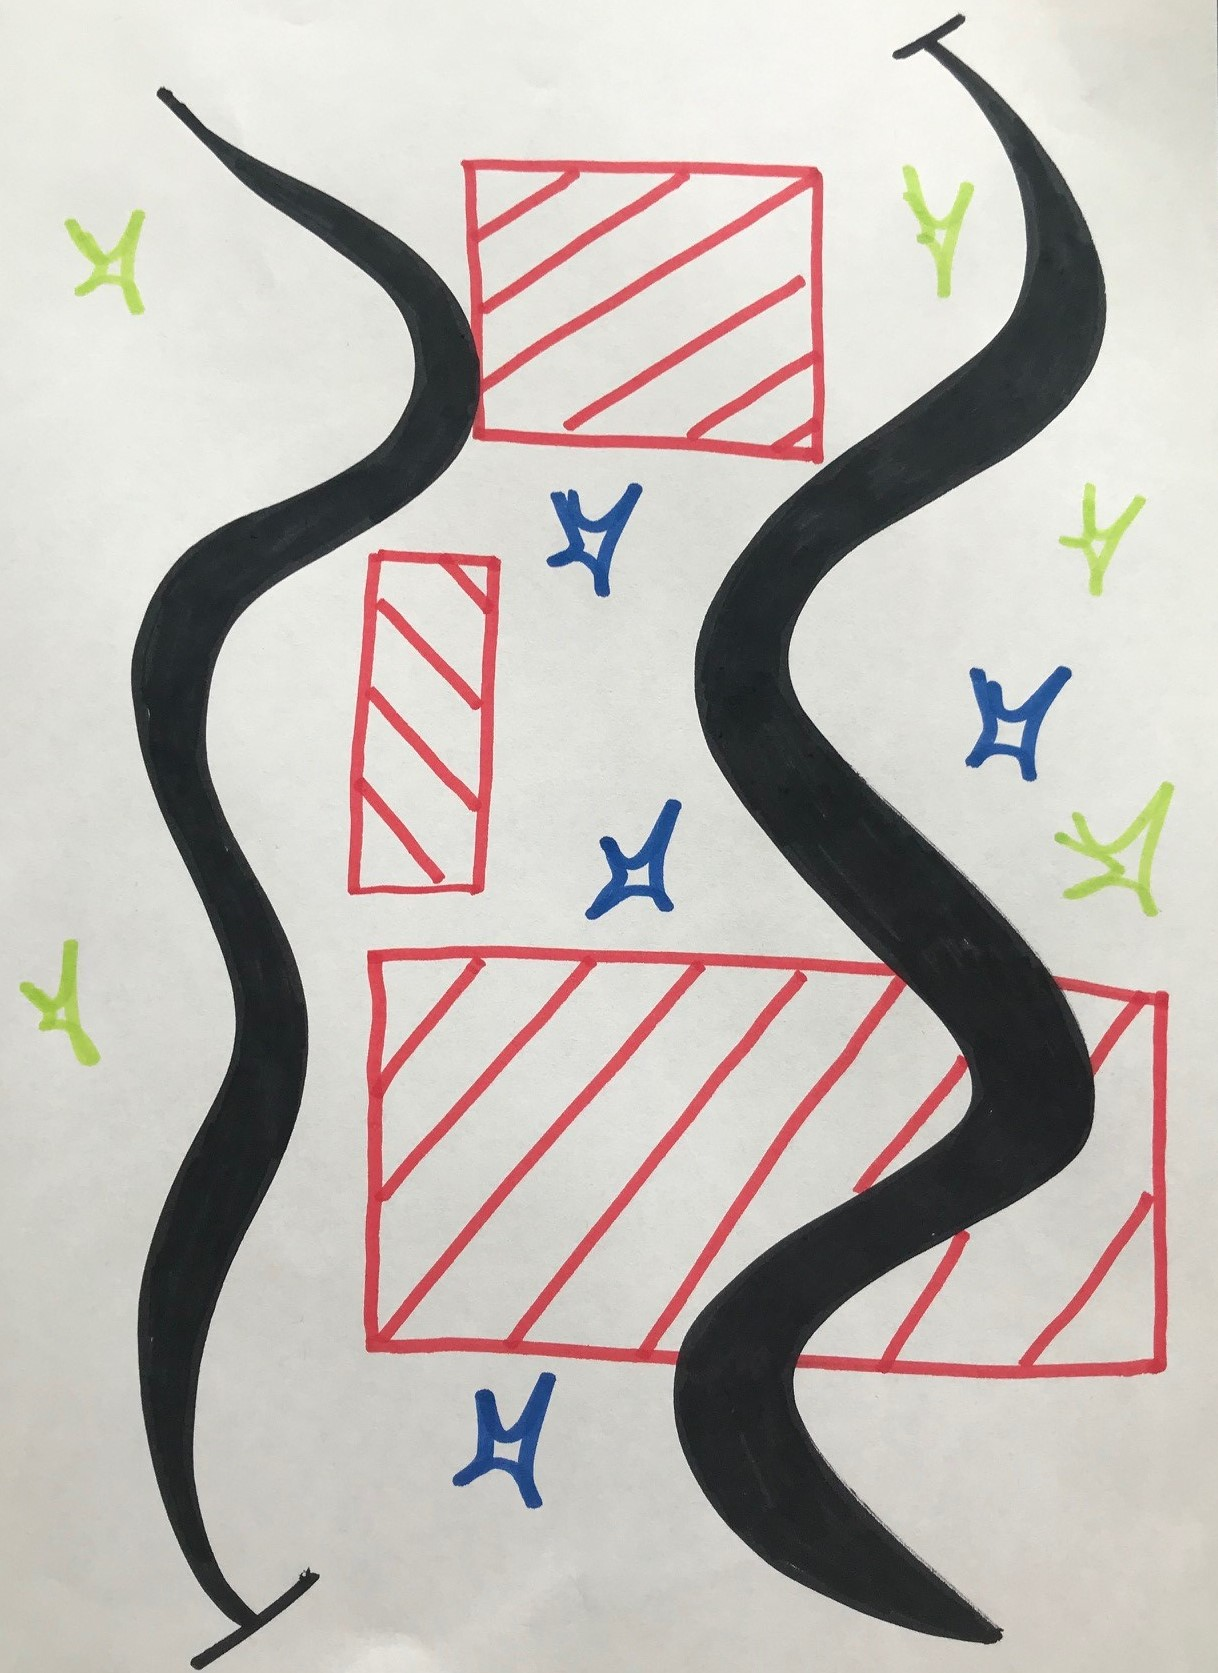 Drawing with red blocks, green and blue flashes with two thick black curly lines.